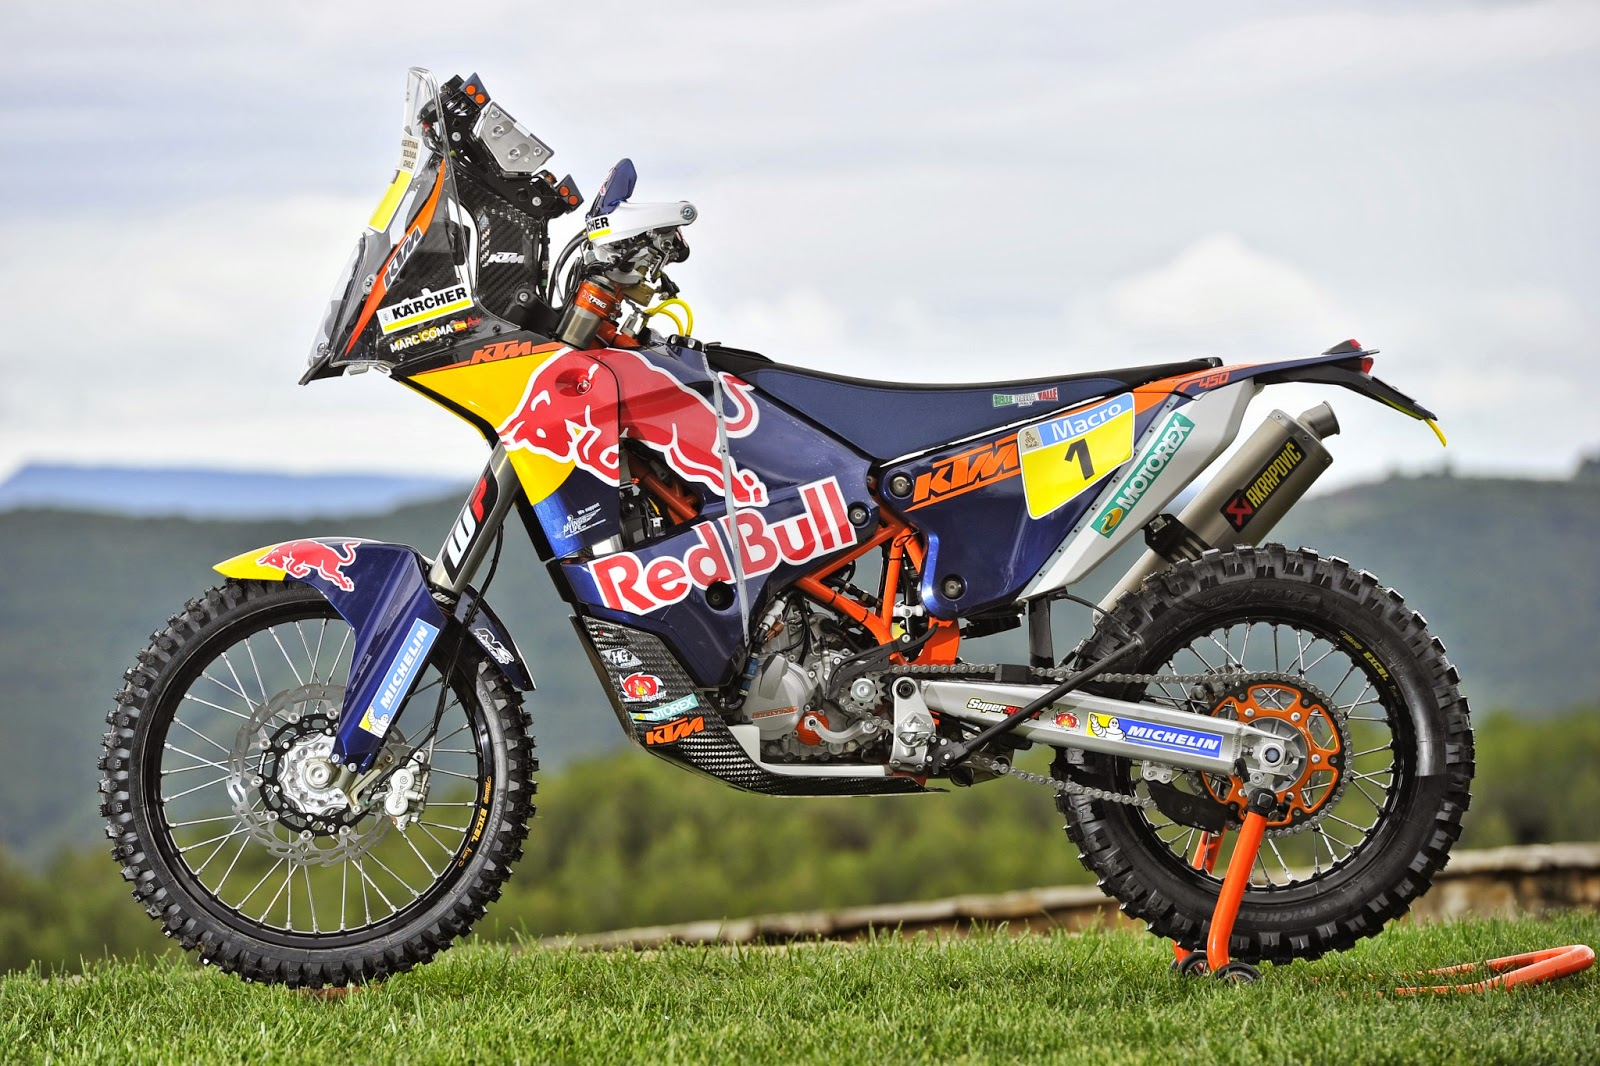 racing caf ktm rally 450 red bull ktm rally factory team. Black Bedroom Furniture Sets. Home Design Ideas